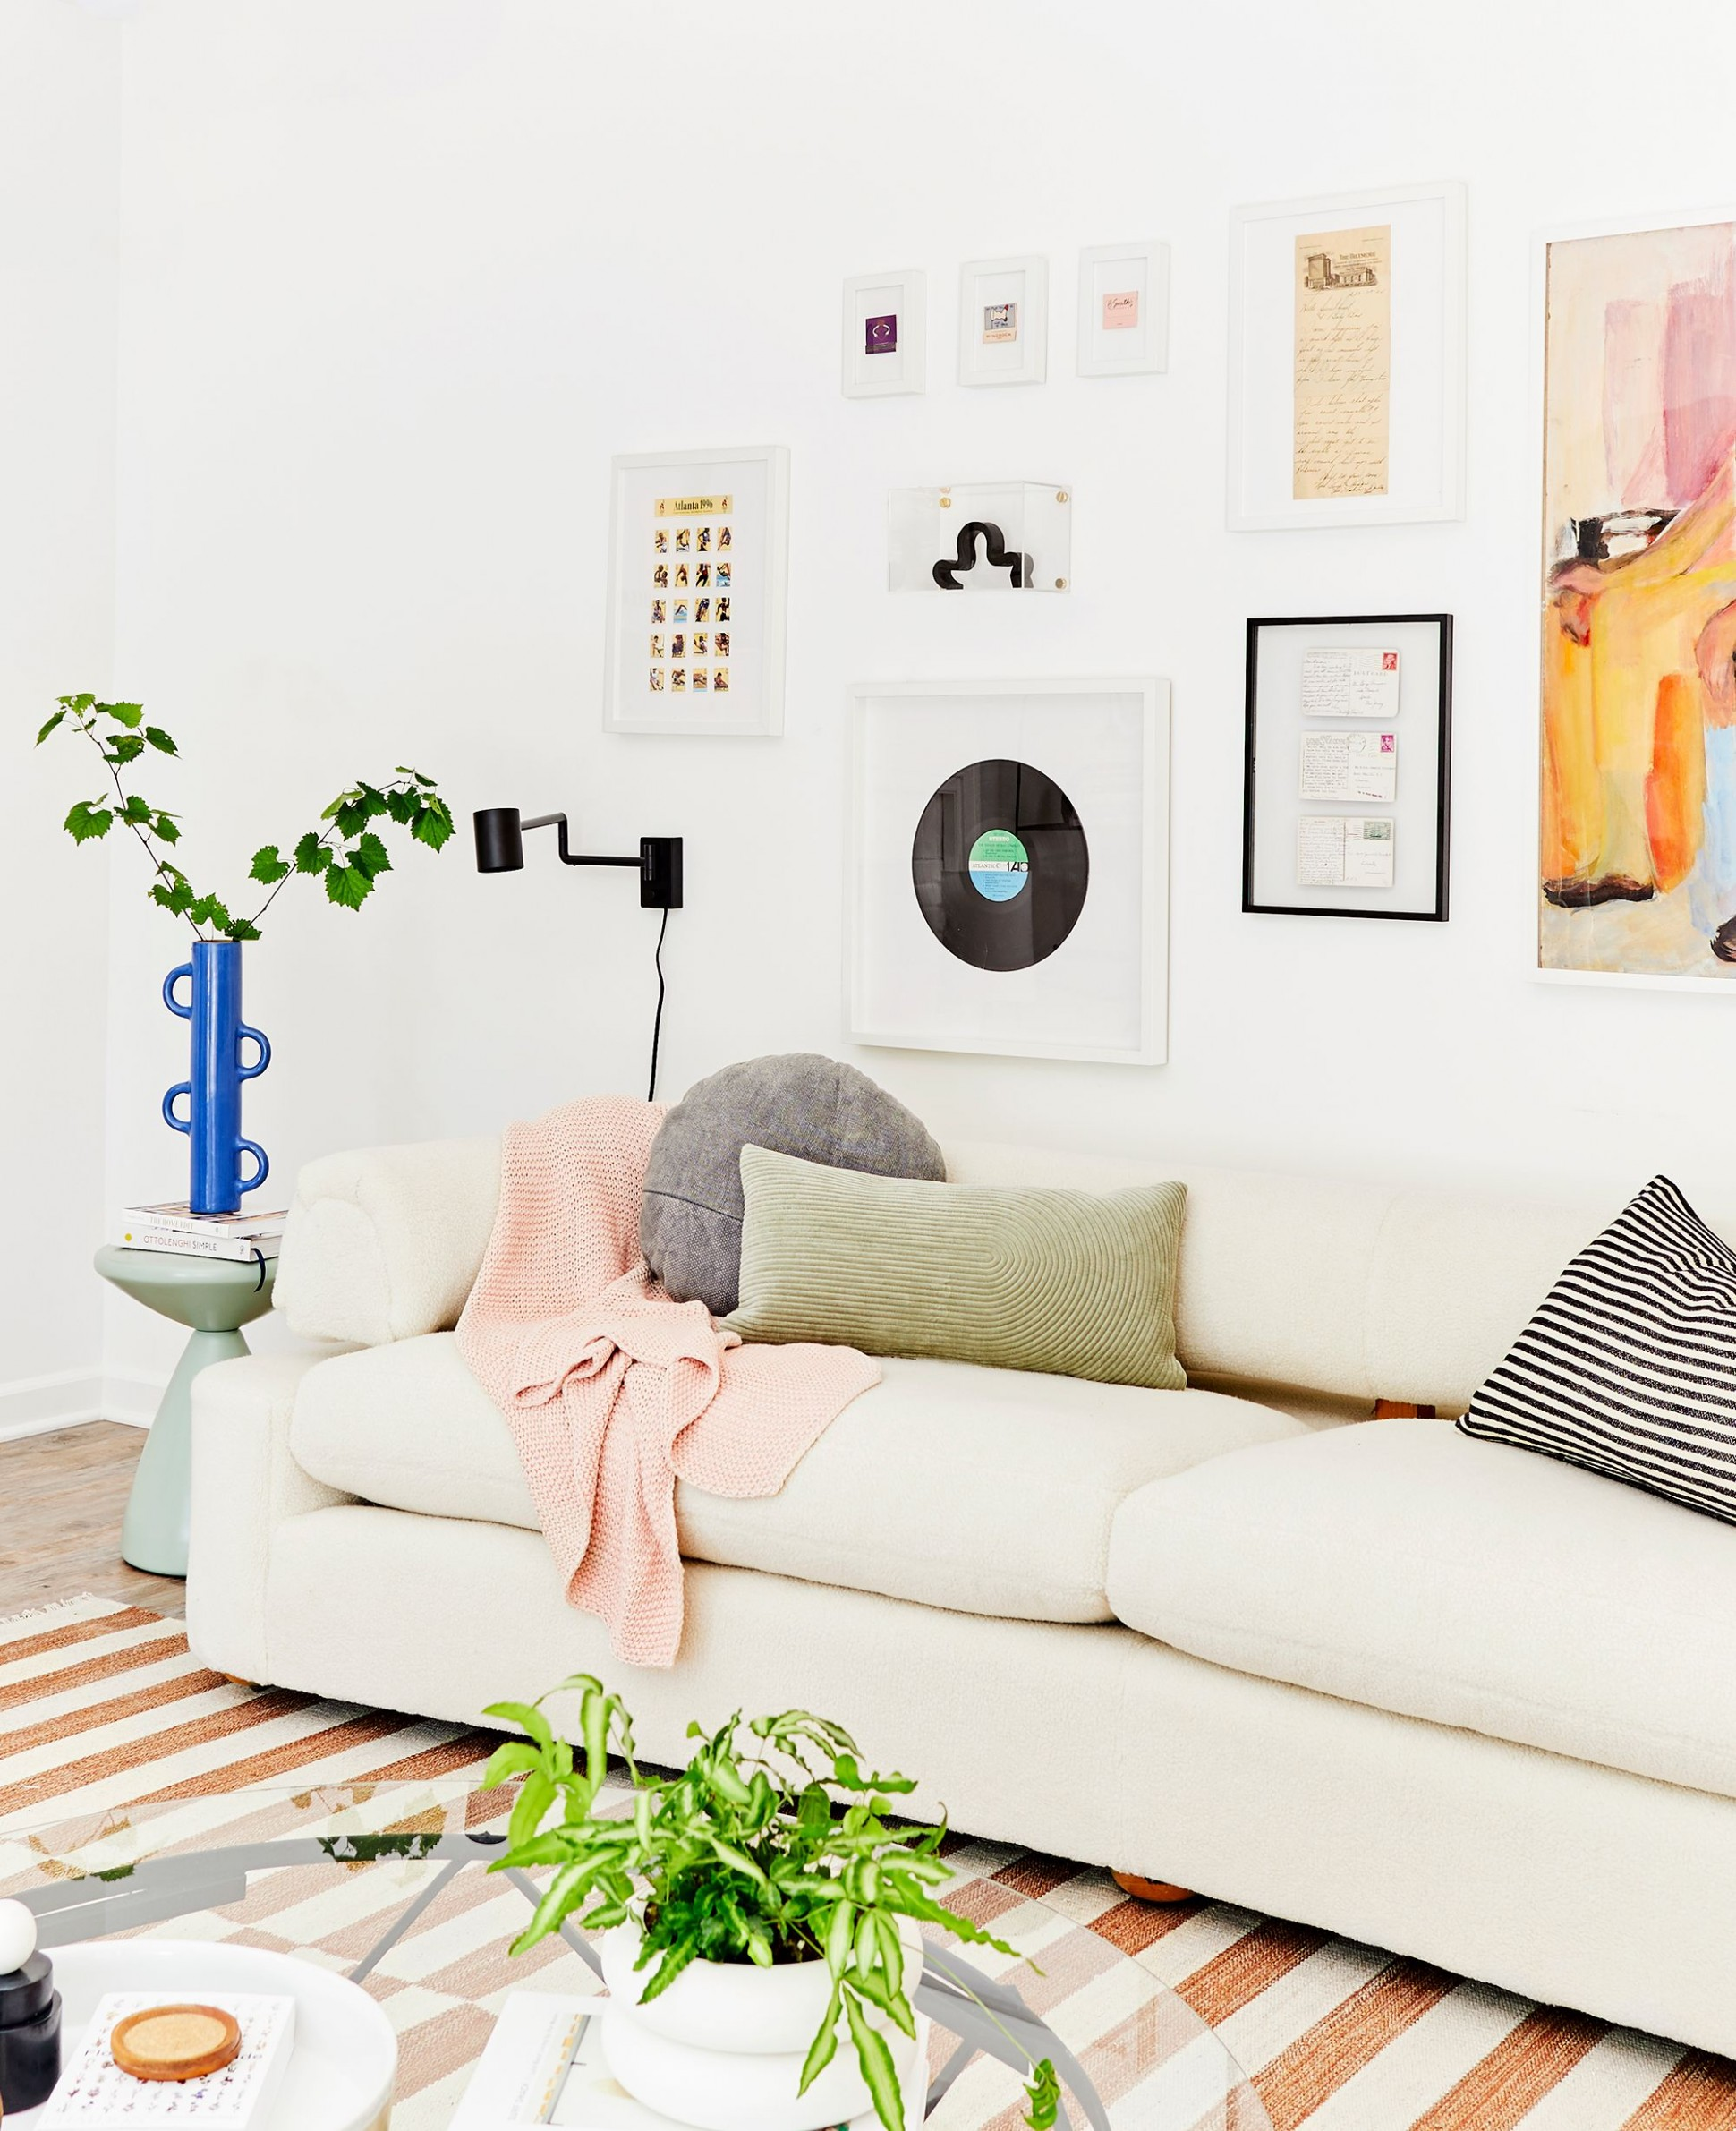 How to Decorate Your First Apartment - First Apartment Decorating  - Apartment Design Help